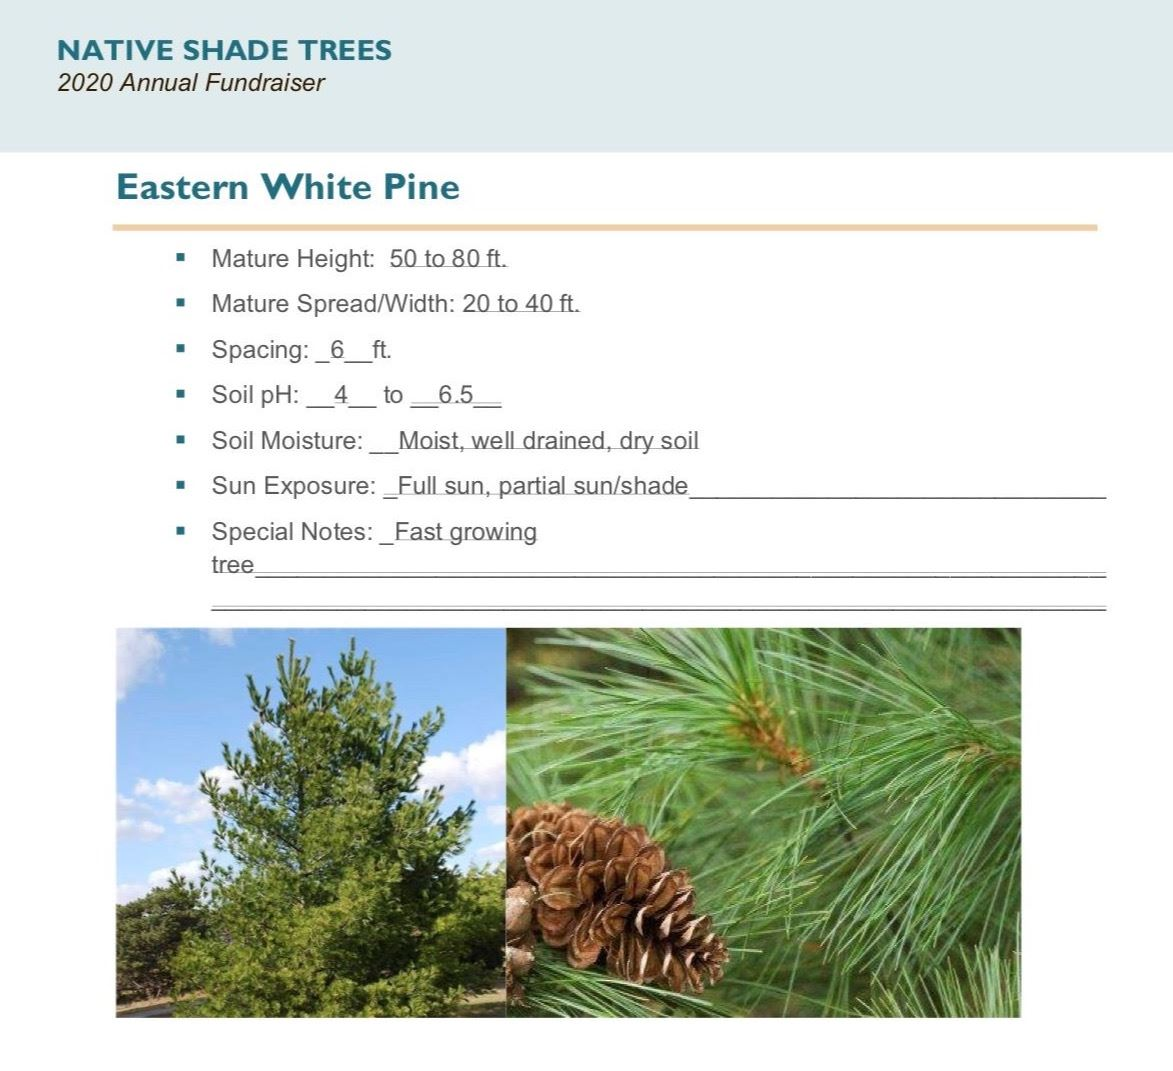 Brochure Template Draft_Native_Shade_Trees2.0(USE)pg9